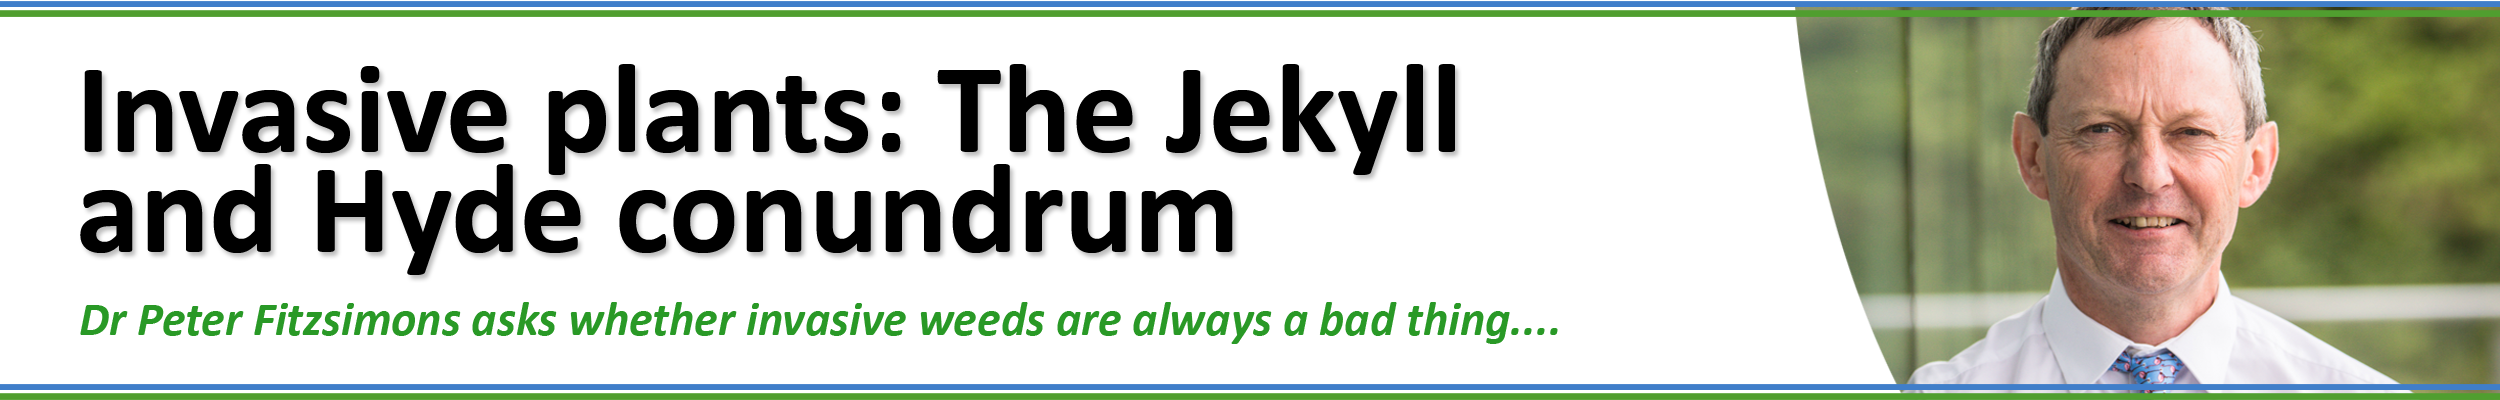 Dr Peter Fitzsimons_Invasive plants - The Jekyll and Hyde conundrum